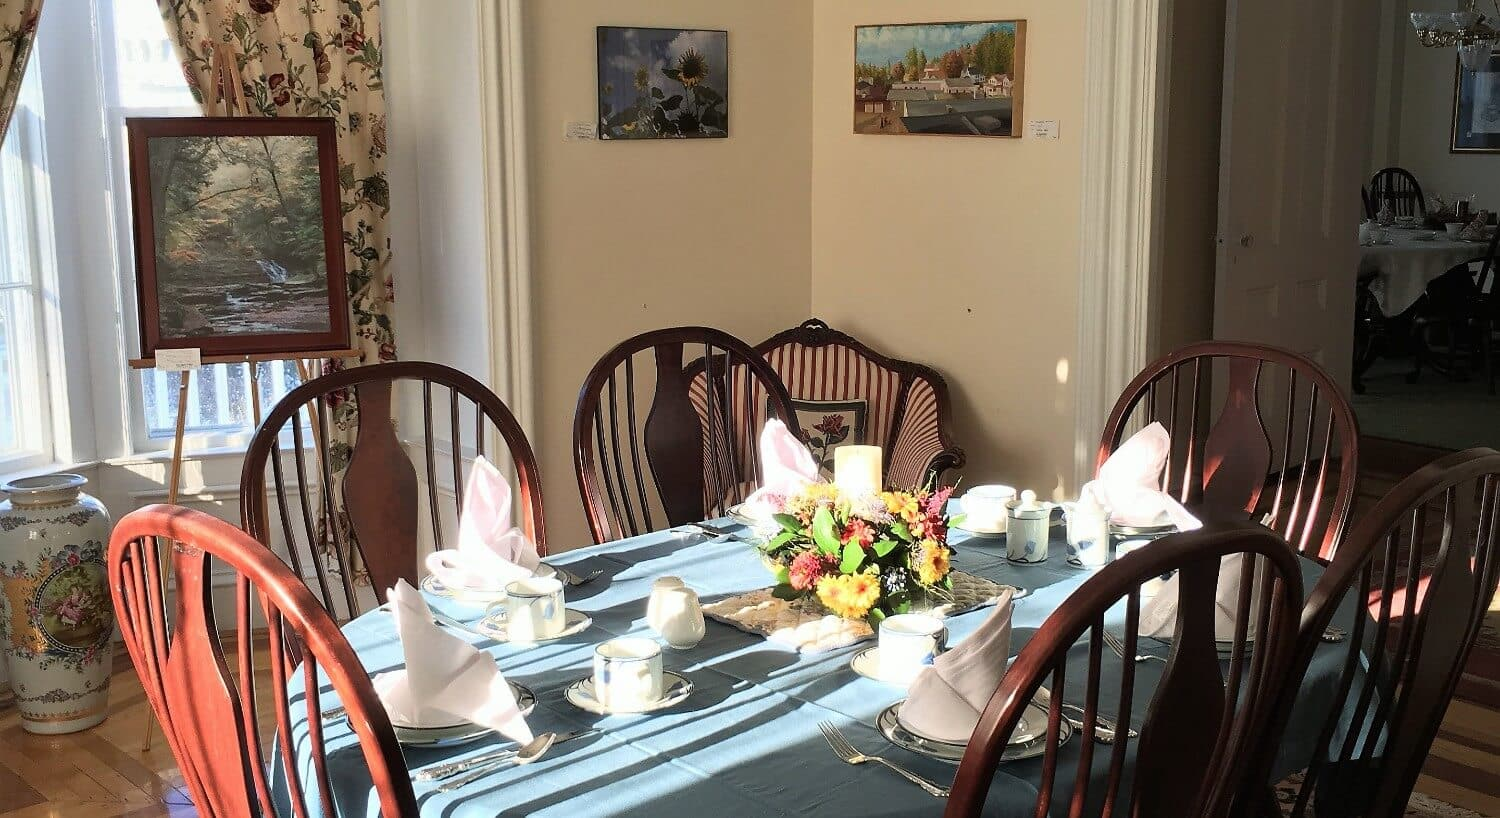 Oval table set for six with tablecloth and napkins in breakfast room.